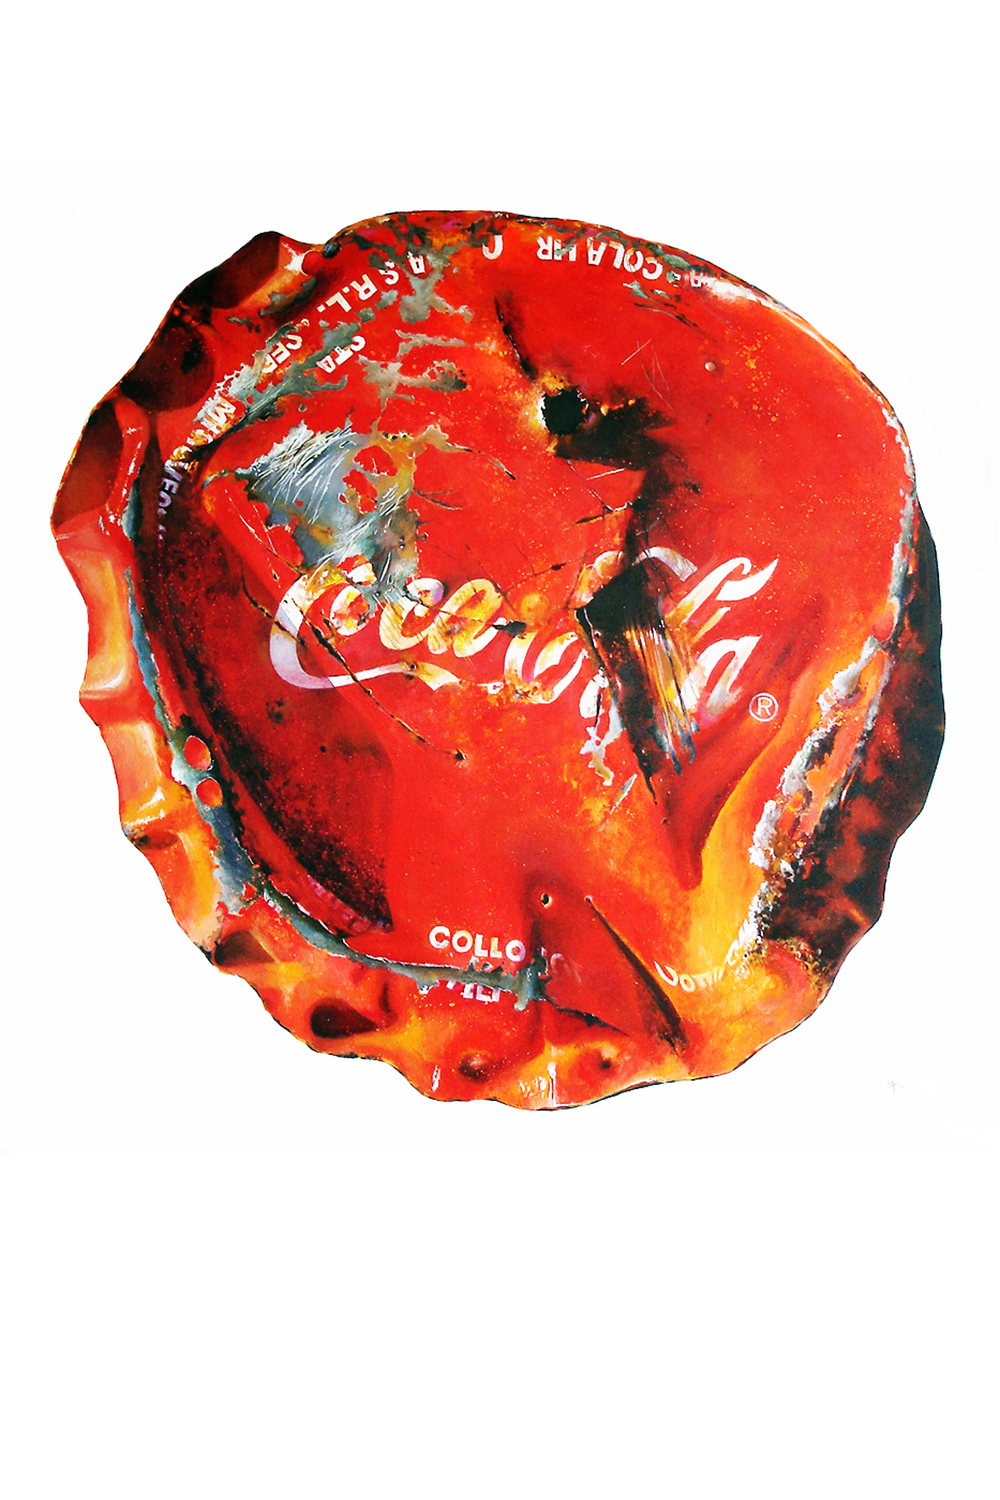 Coke - 2010, acrylic on canas, 100x100cm.jpg